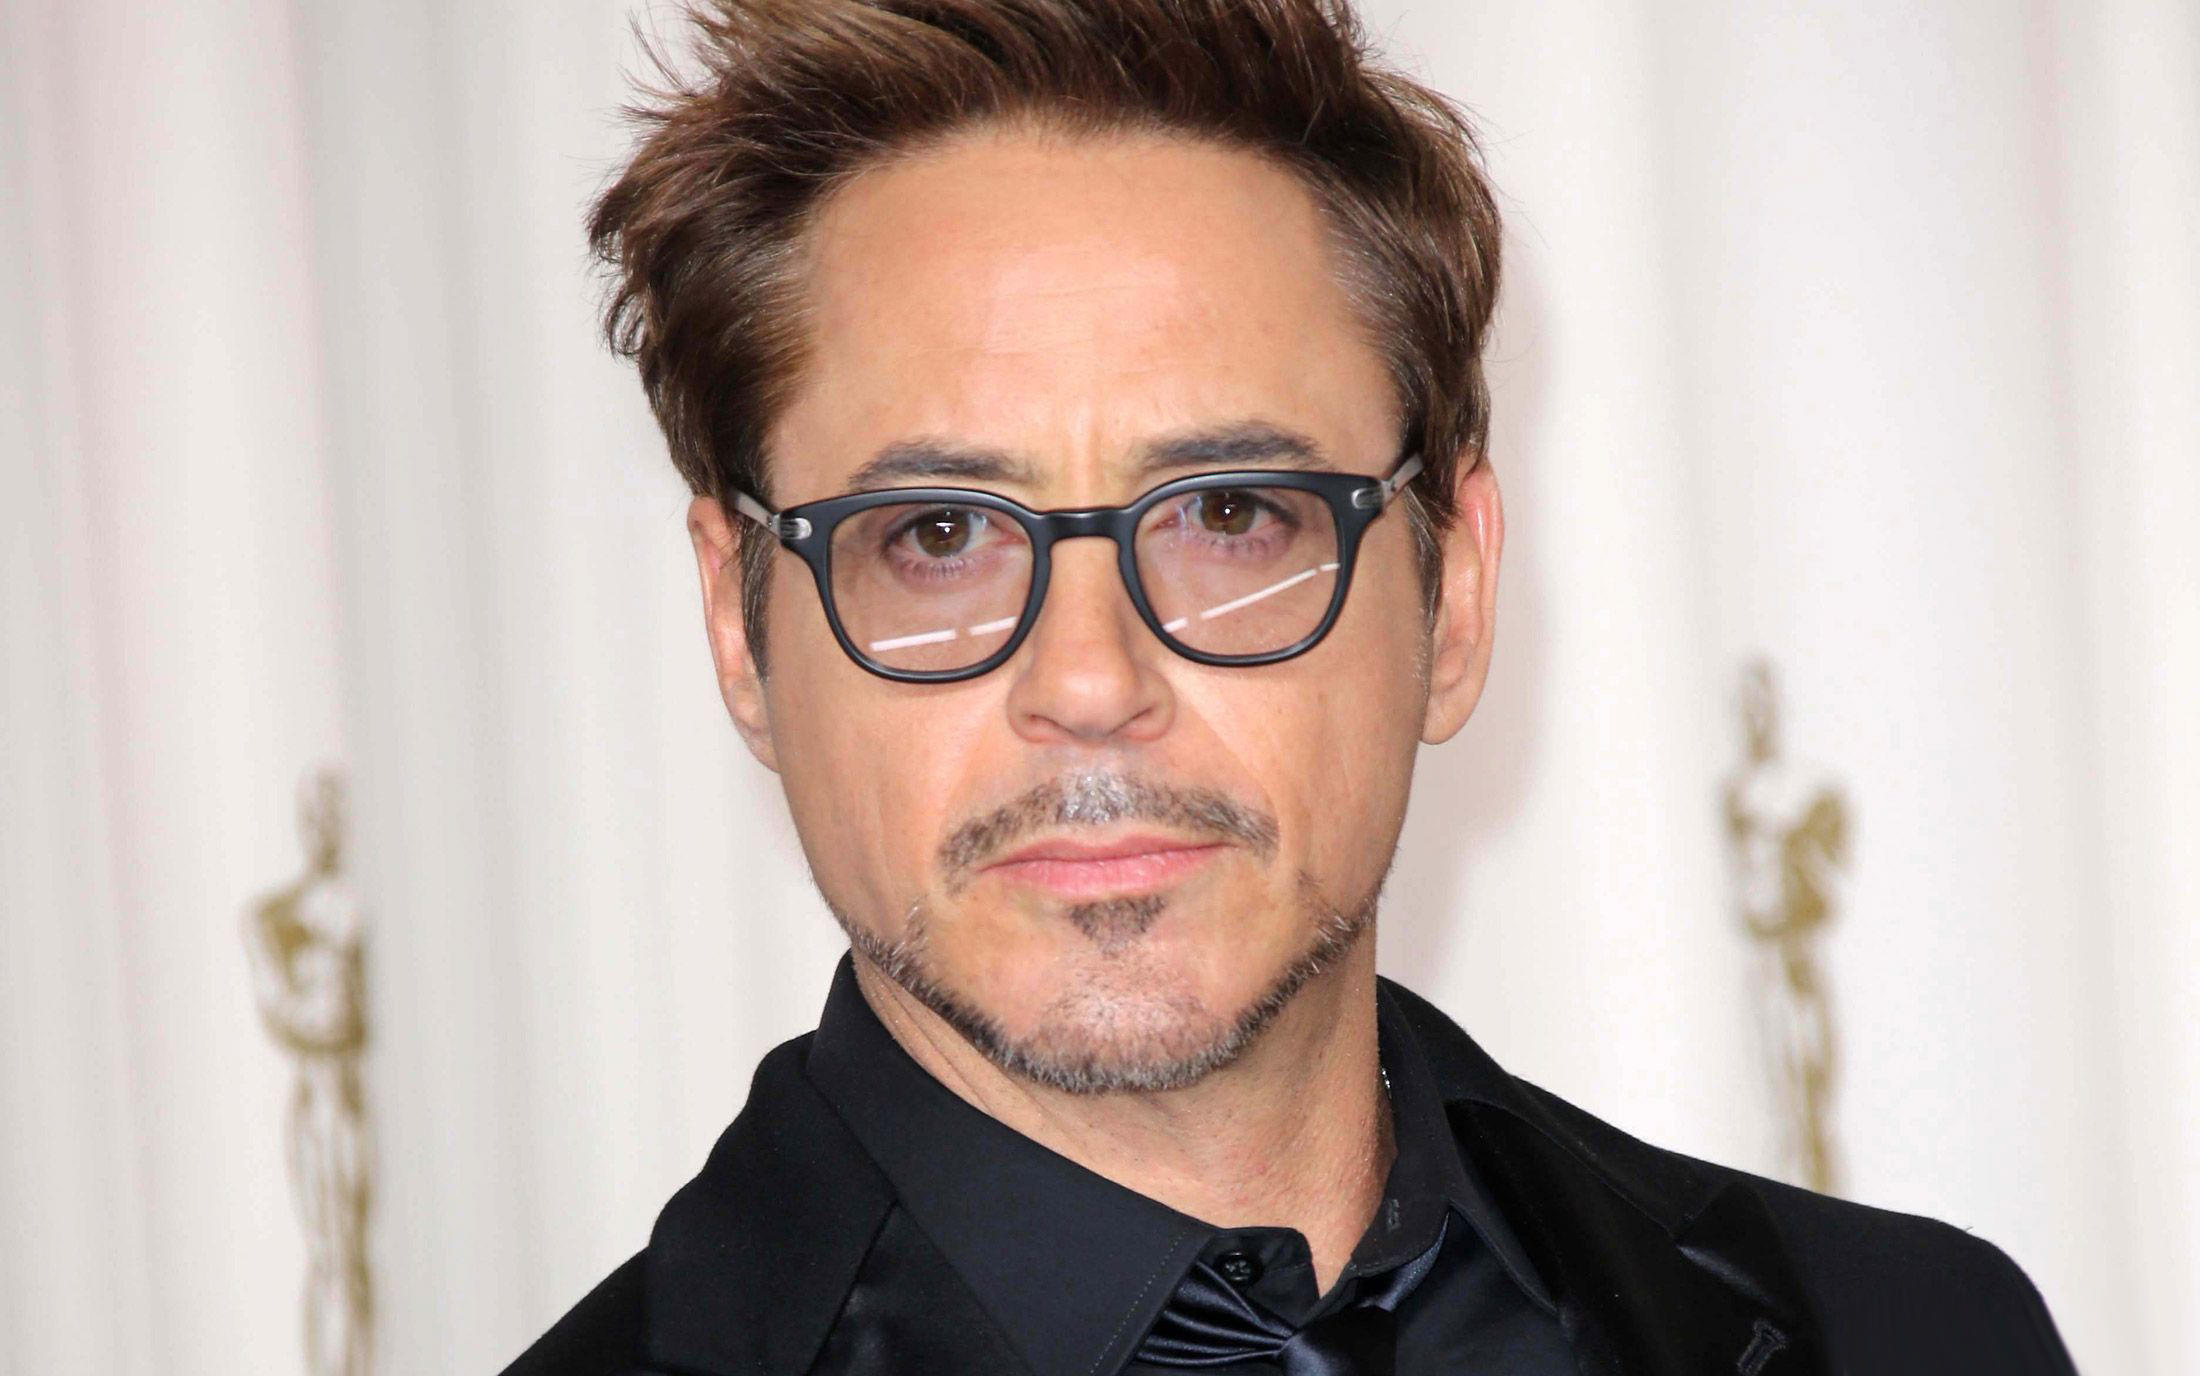 Robert Downey Jr. Nude Frontal And Uncensored Photos & Videos